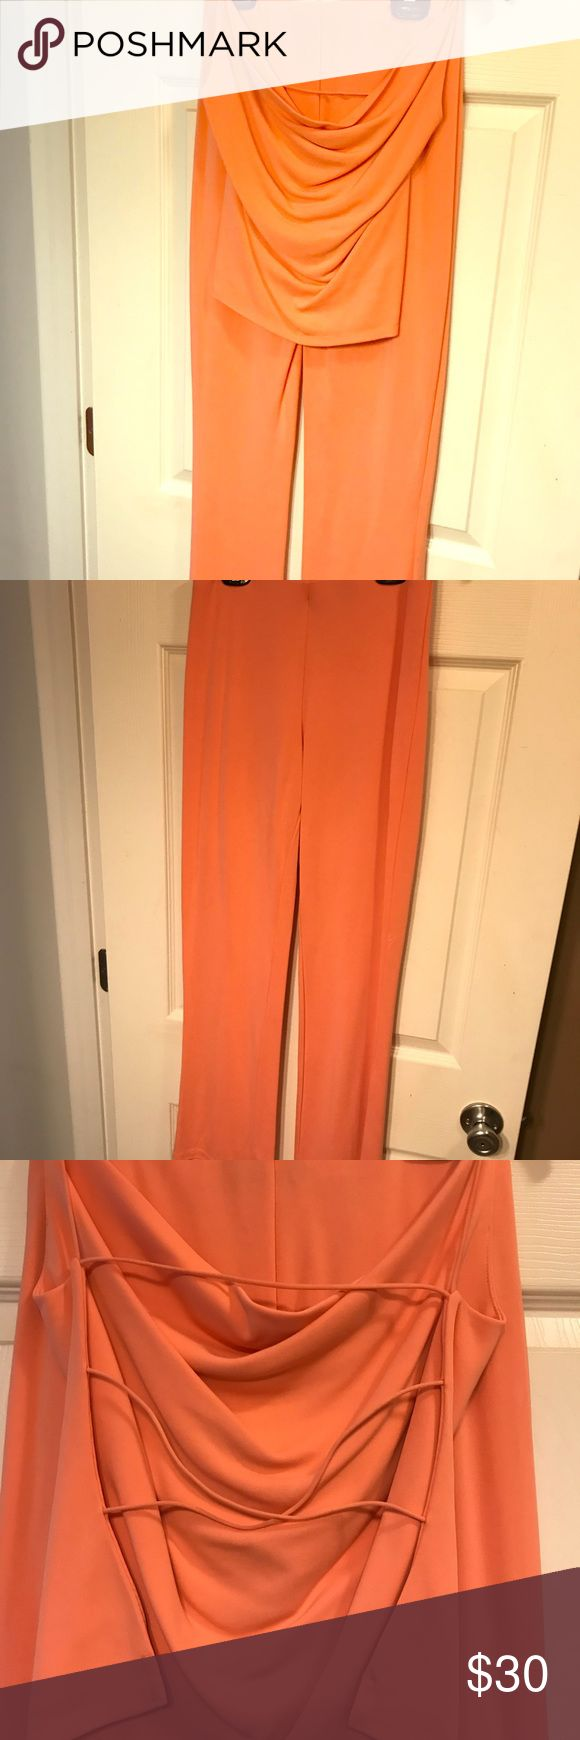 Like new! Beautiful orange 2 piece! MODA International Orange 2 piece with strappy top and long pants to match!  Worn once to Marine Corps graduation then dry-cleaned and bagged!!  🍂great condition  🍂Women's XS 🍂smoke-free home! Moda International Other